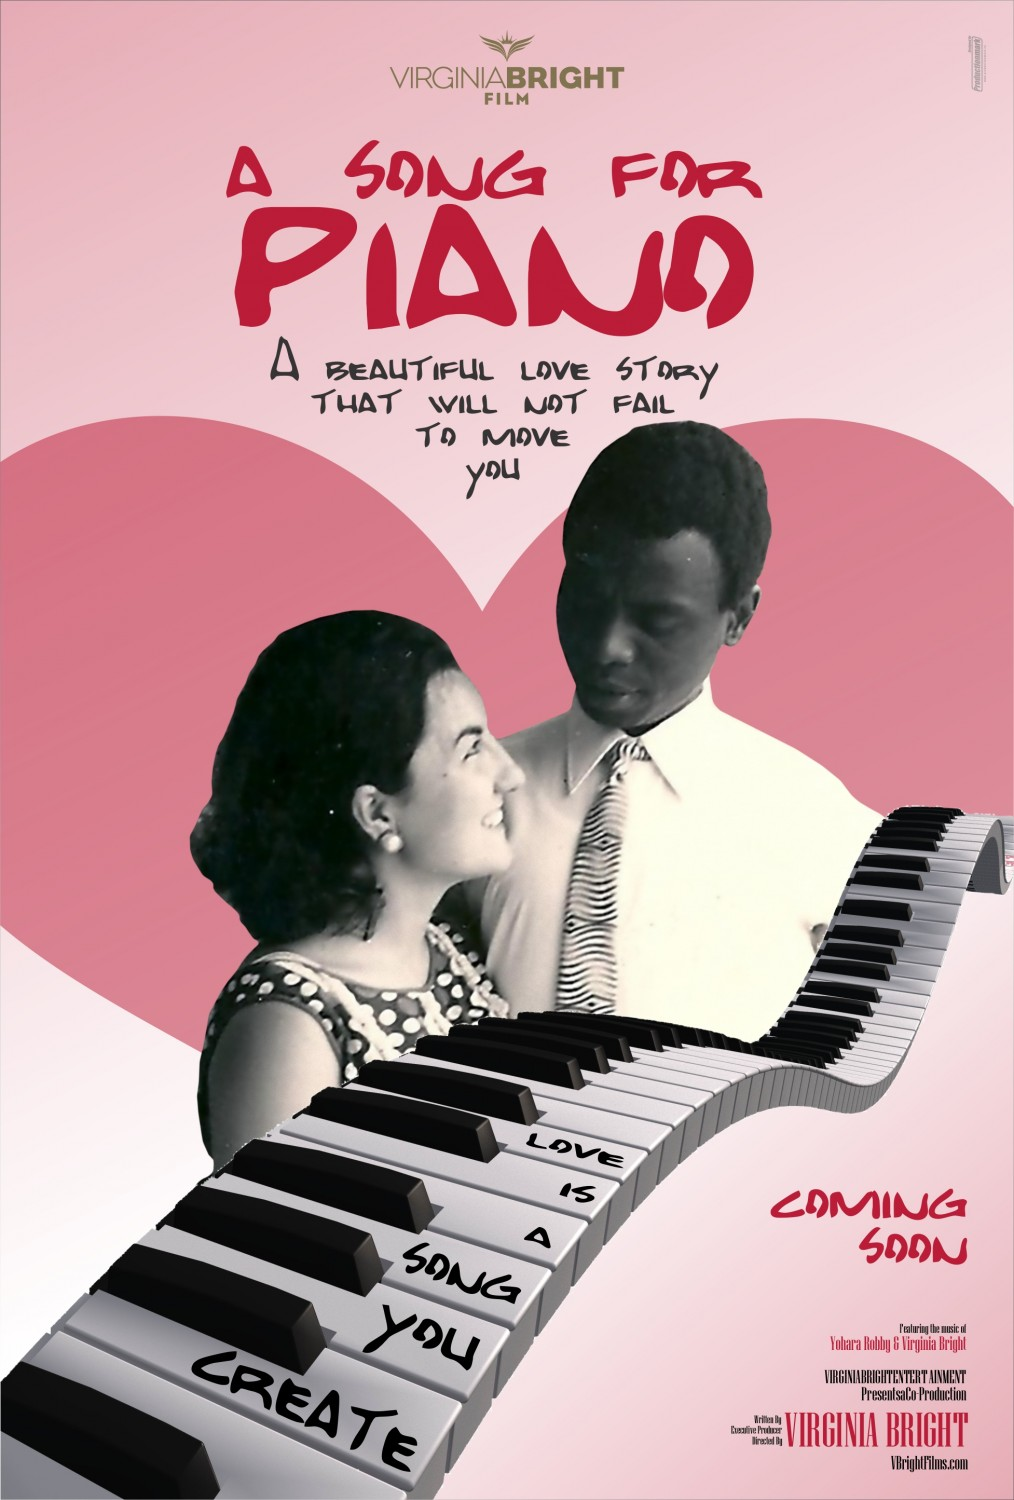 Productionmark-Services-Film-Poster-Design-Short-Film-Song-For-Piano